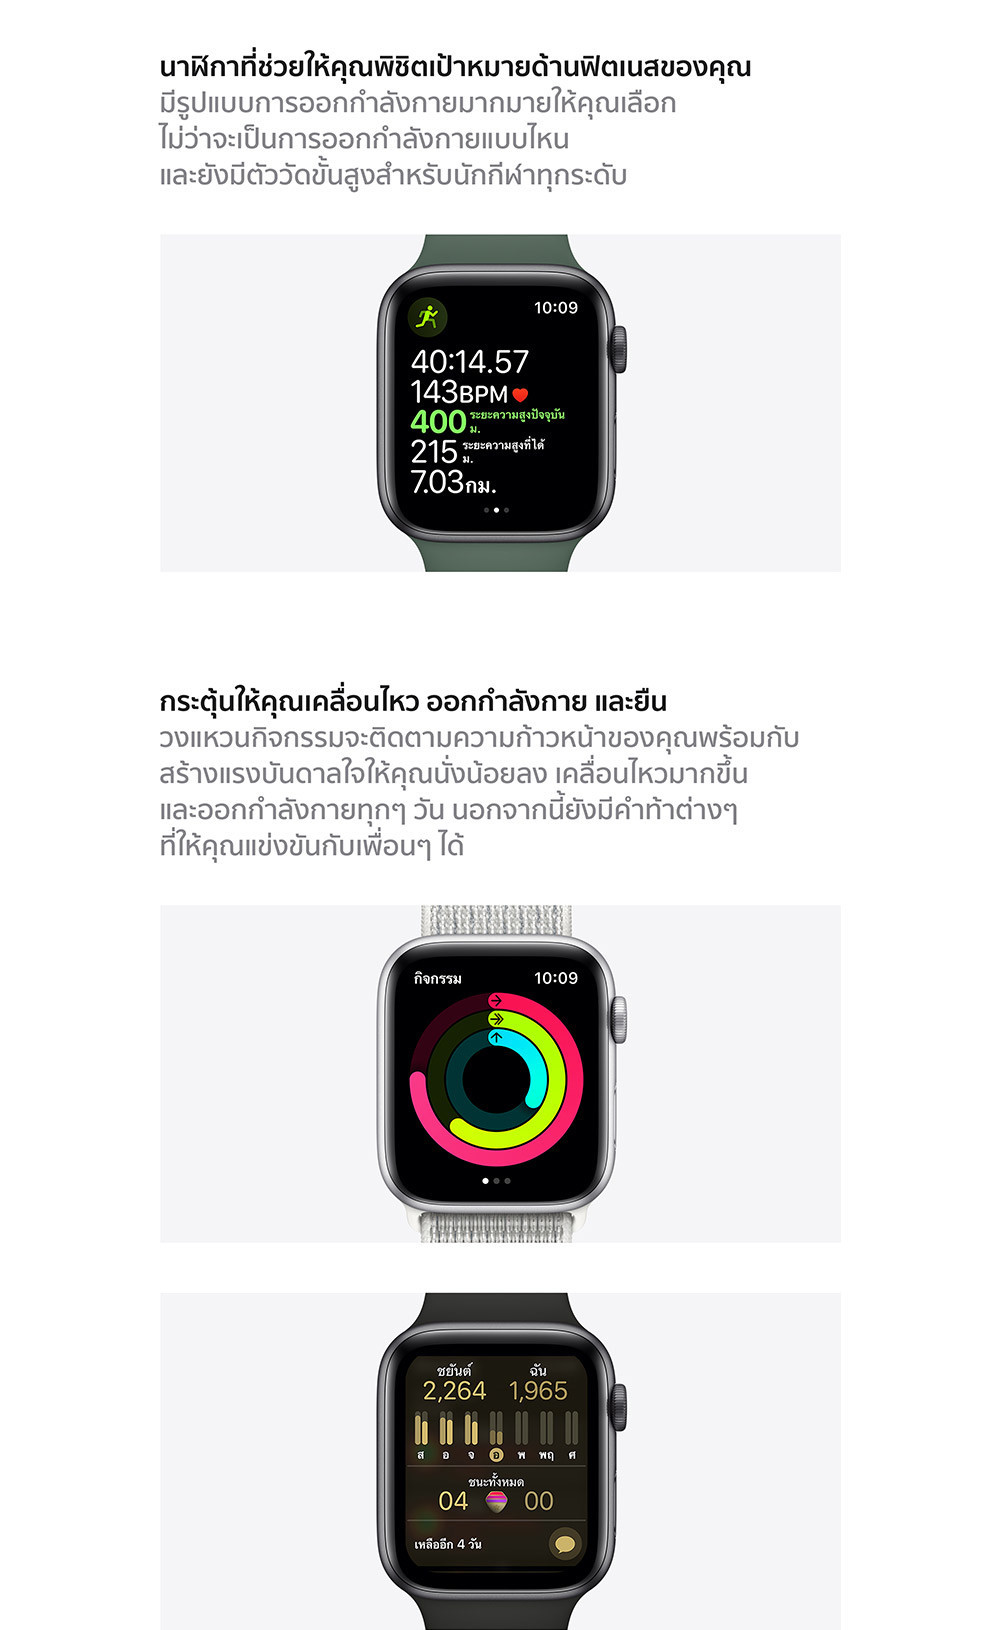 c3applewatchseries53.jpg